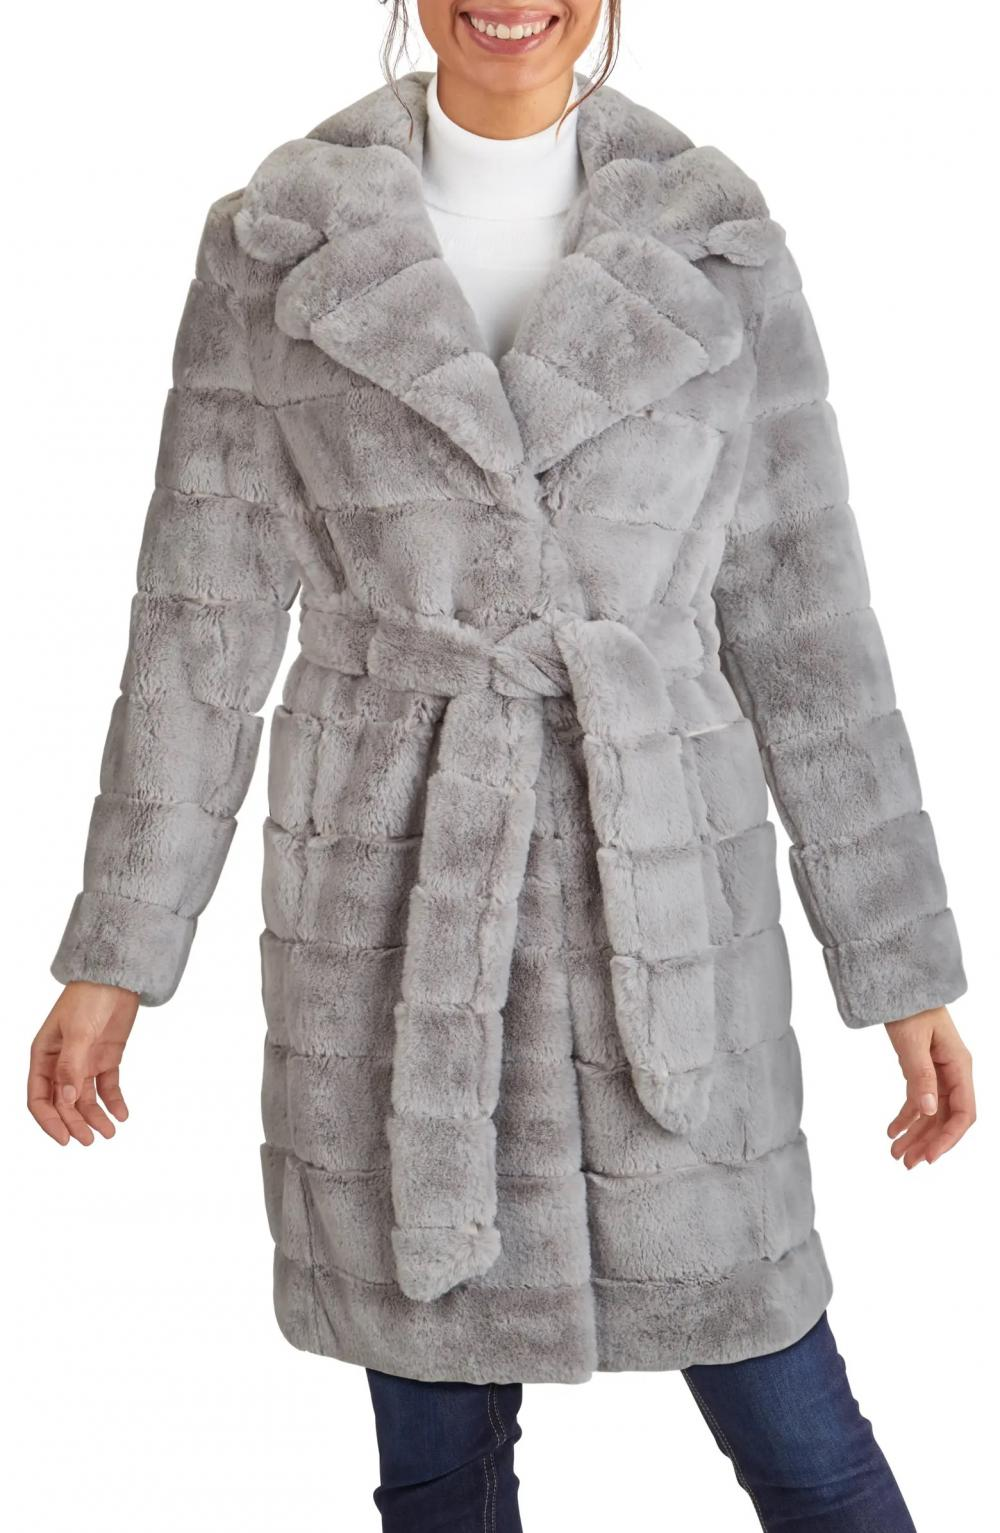 Grooved Faux Fur Belted Coat